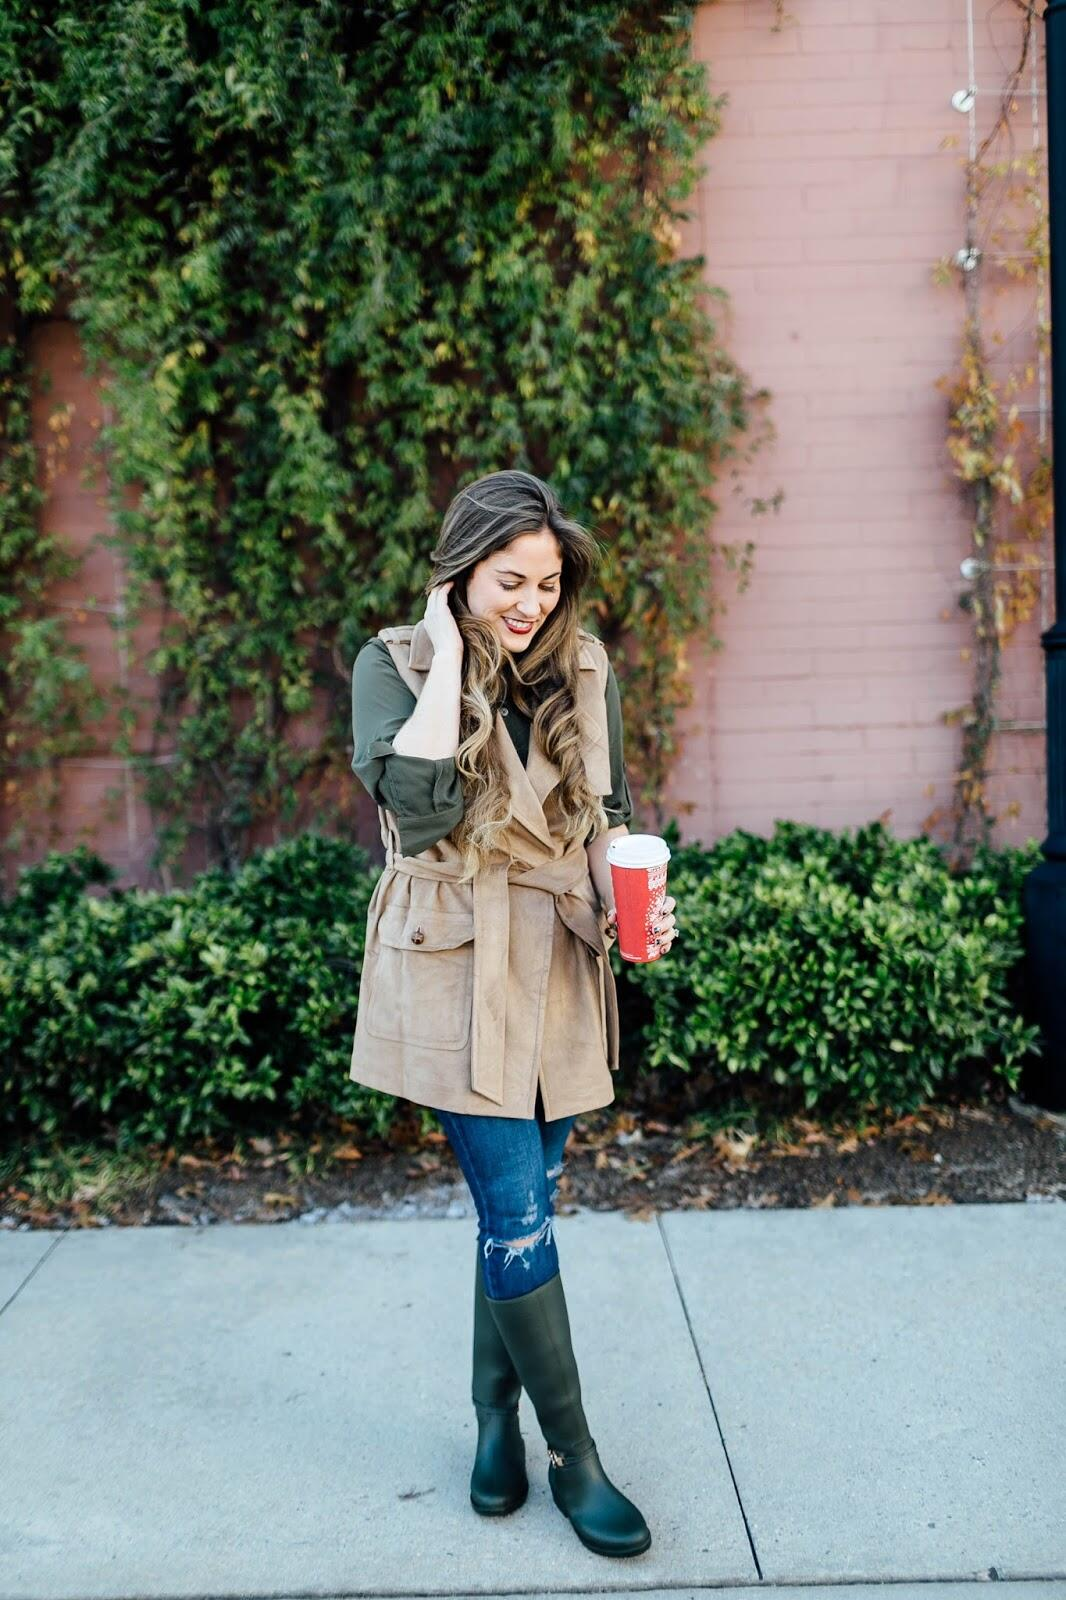 4d5348e0415 Winter Rain Boots + $100 Payless Giveaway!! | Walking in Memphis in ...